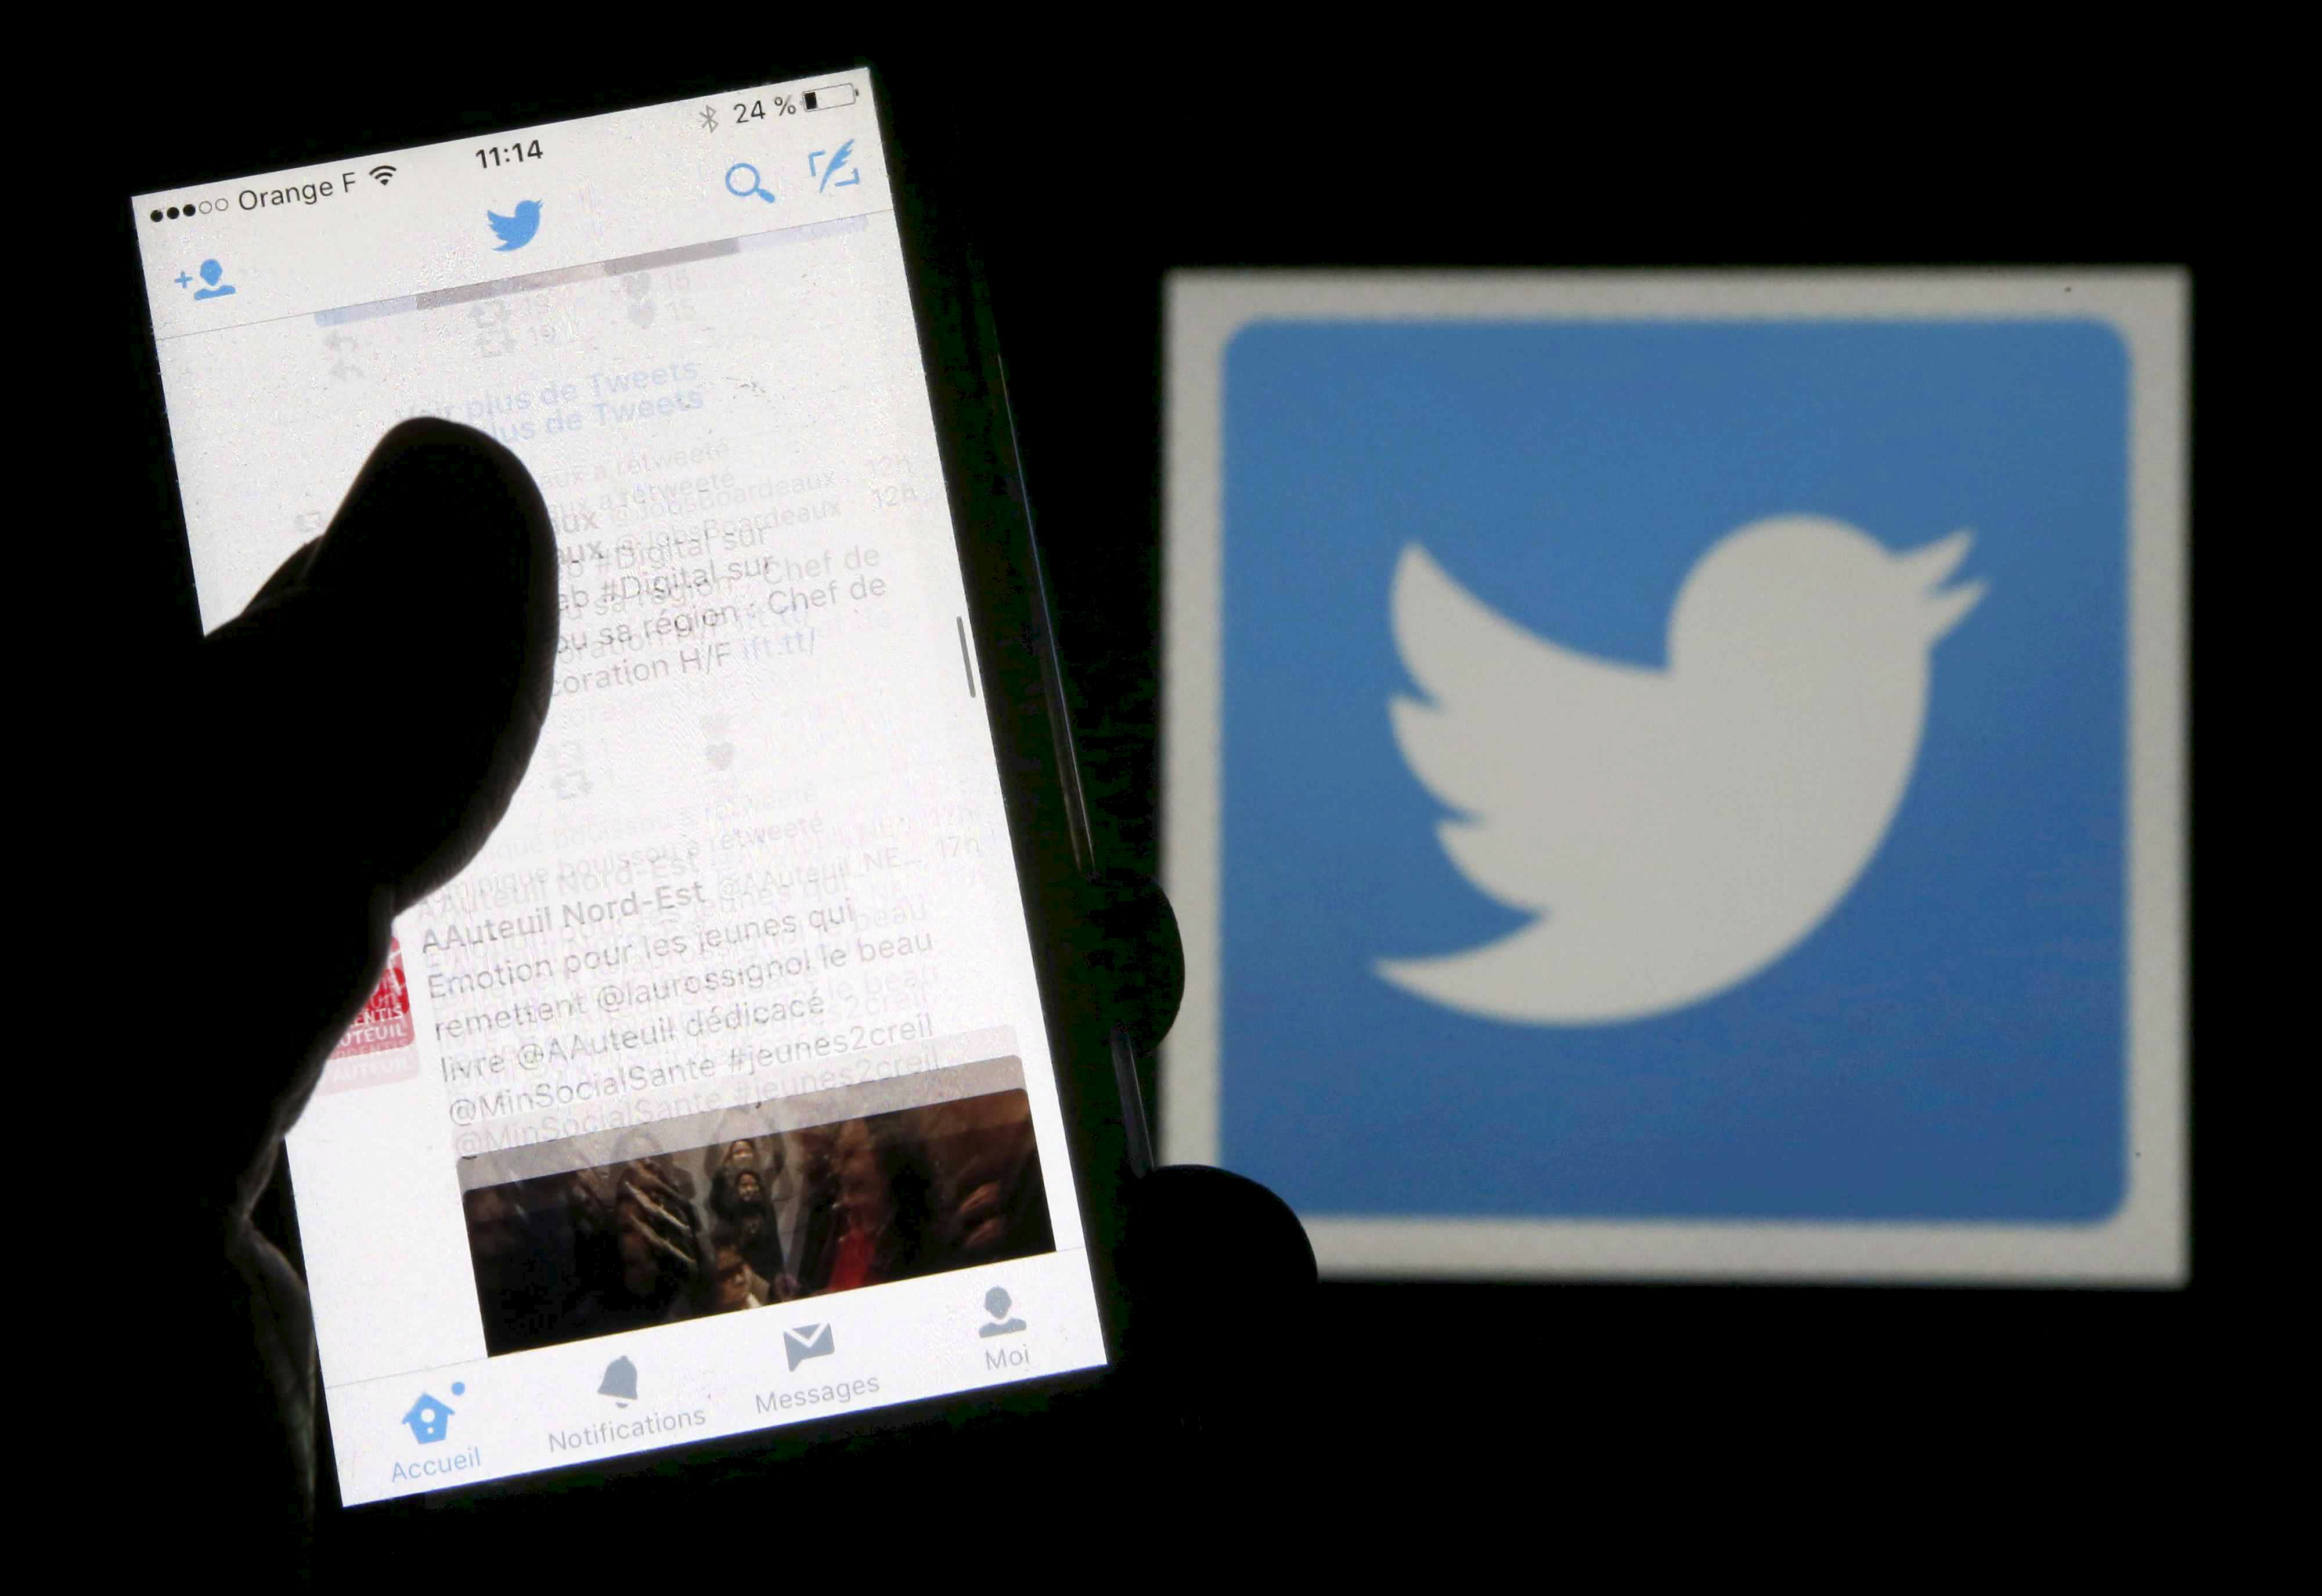 Twitter Suspends Guccifer 2 After Dccc Hack